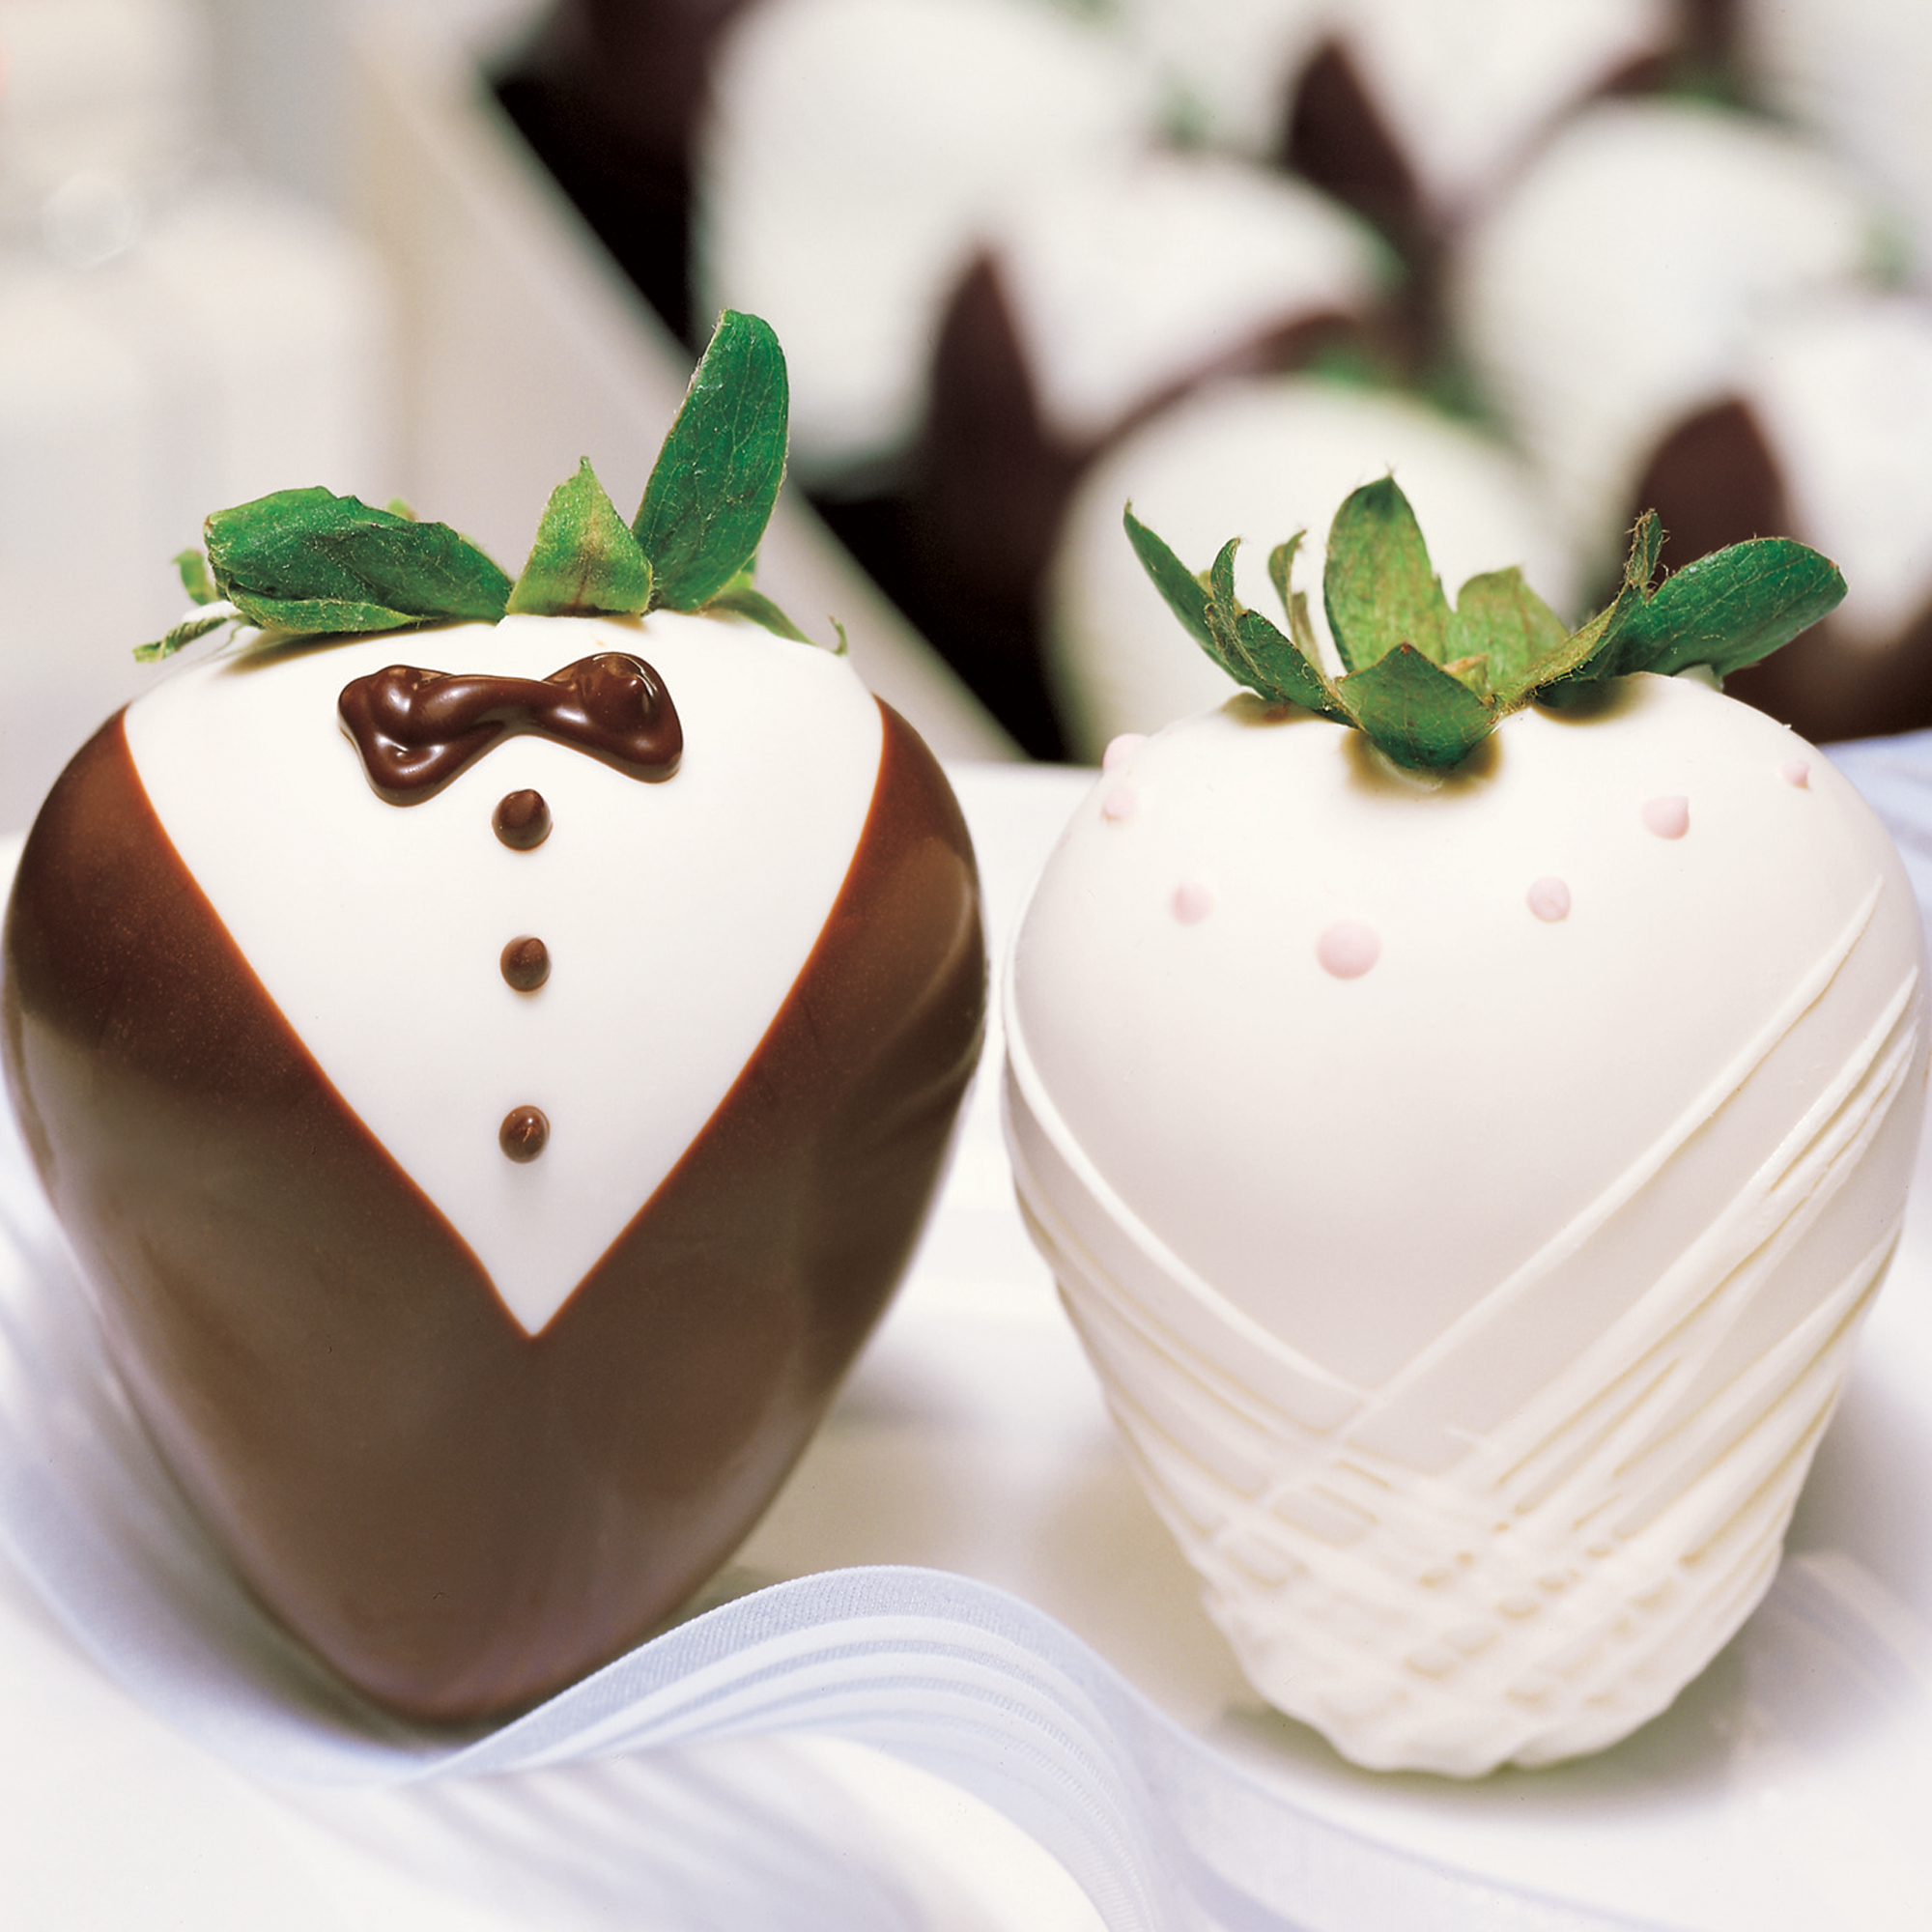 Sharis Berries Featuring Bride and Tuxedo Gourmet Strawberries  A Unique Treat for Summer Weddings